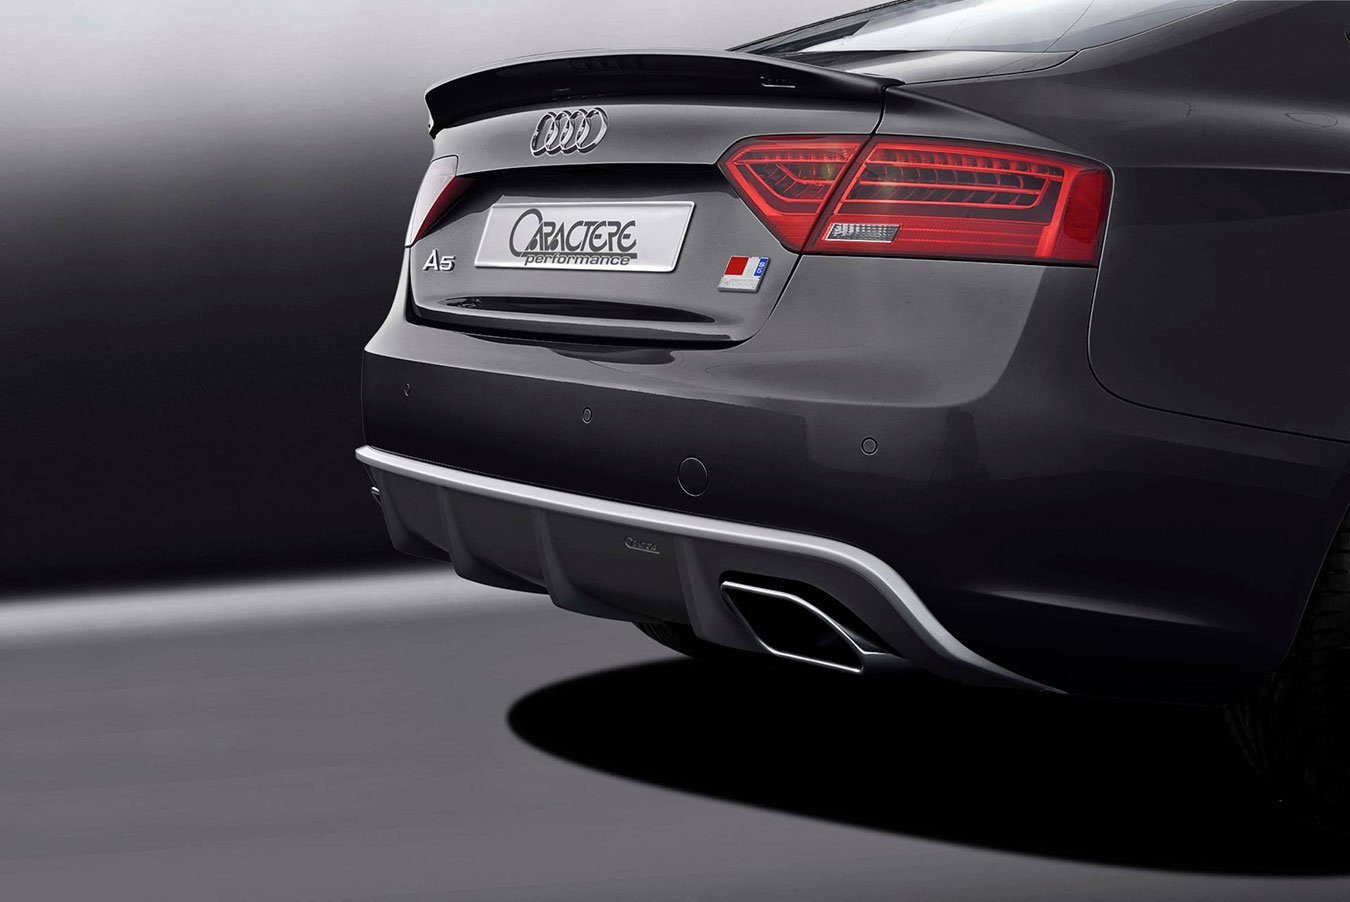 Caractere Rear Diffuser with Dual Exhaust, fits Audi A5 B8.5 2.0 TDI / 1.8 TFSI